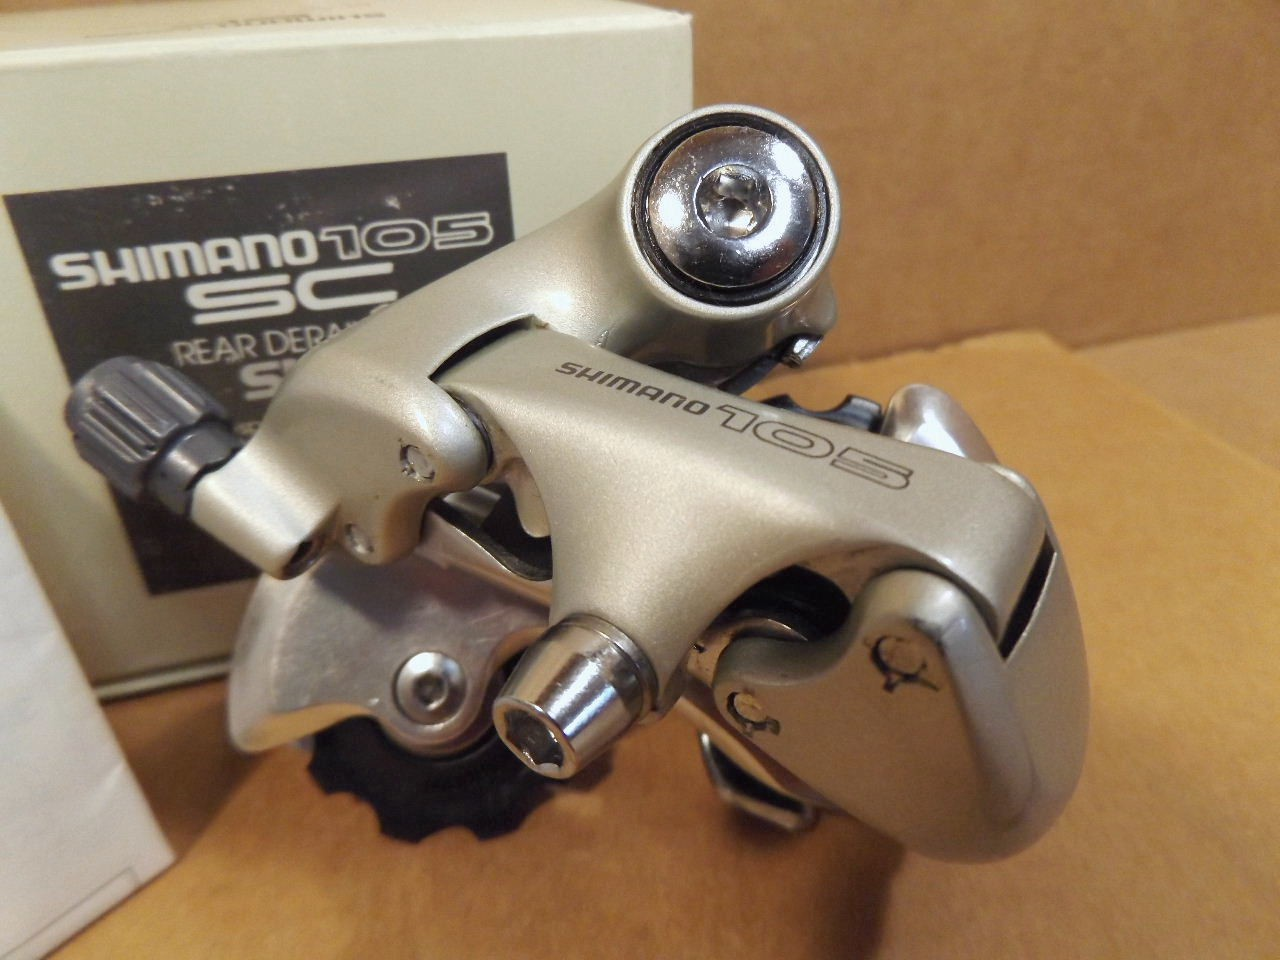 New-Old-Stock Shimano 105 Rear Derailleur w//Short Cage...Model RD-1056